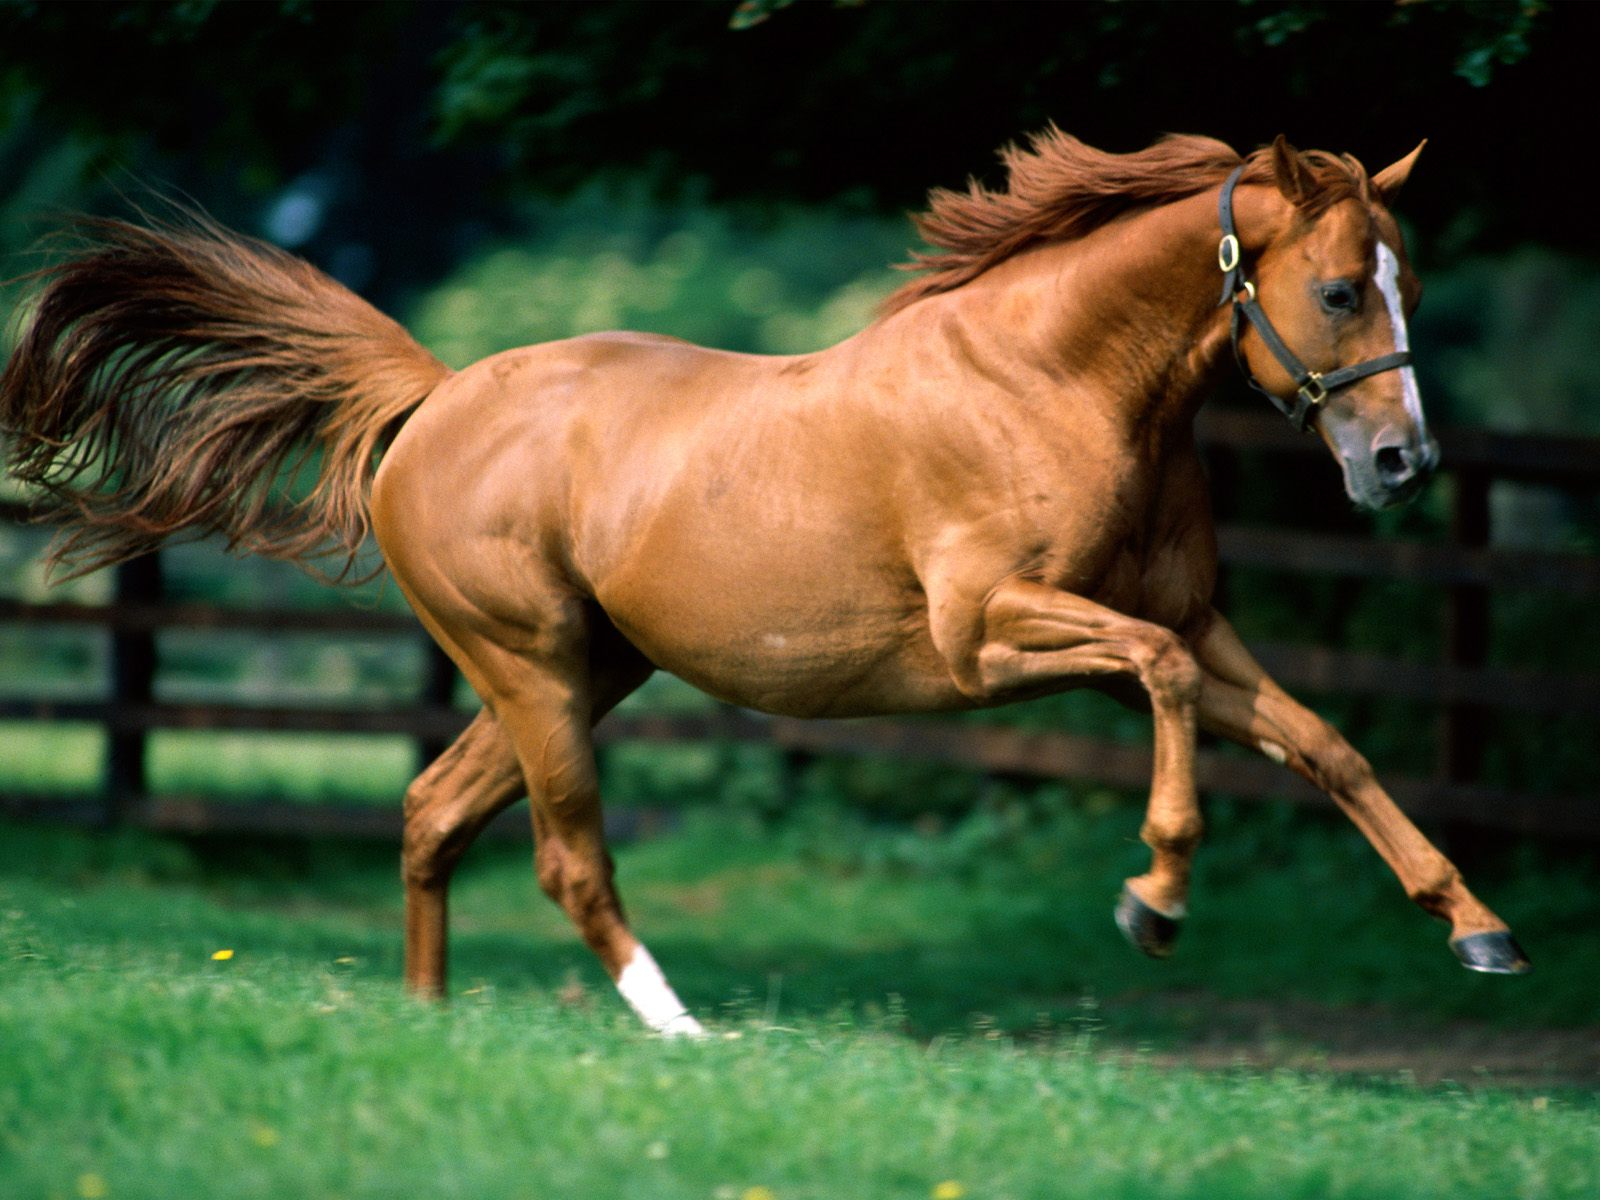 Free Download The Cat Running Horses Wallpapers For Desktop